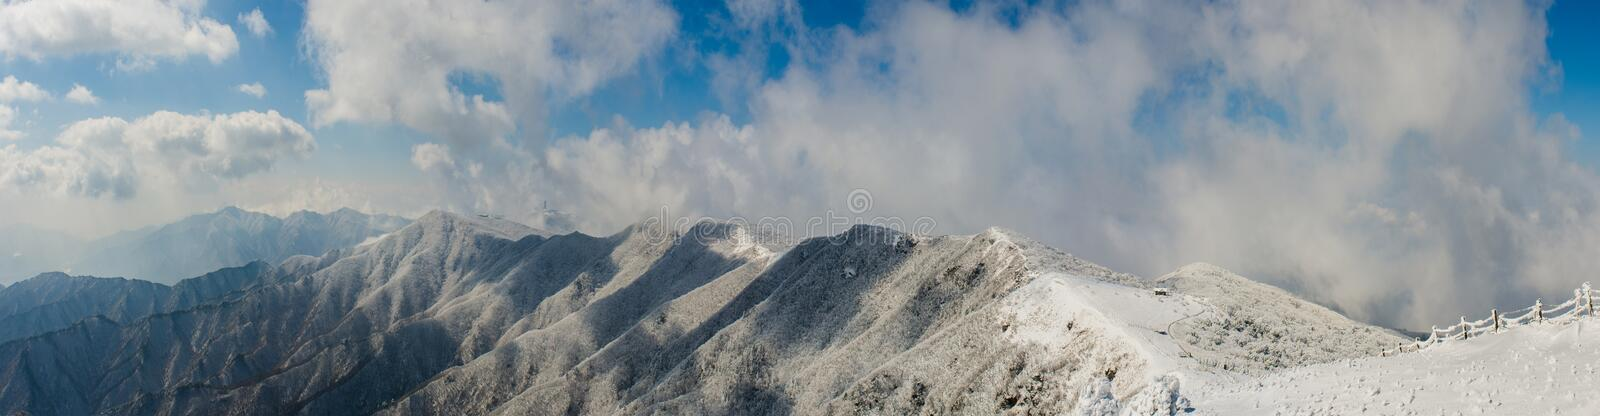 Panorama winter white snowy. background with Sea fog is the most beautiful landscape,Sobaeksan Mountain in Korea royalty free stock images